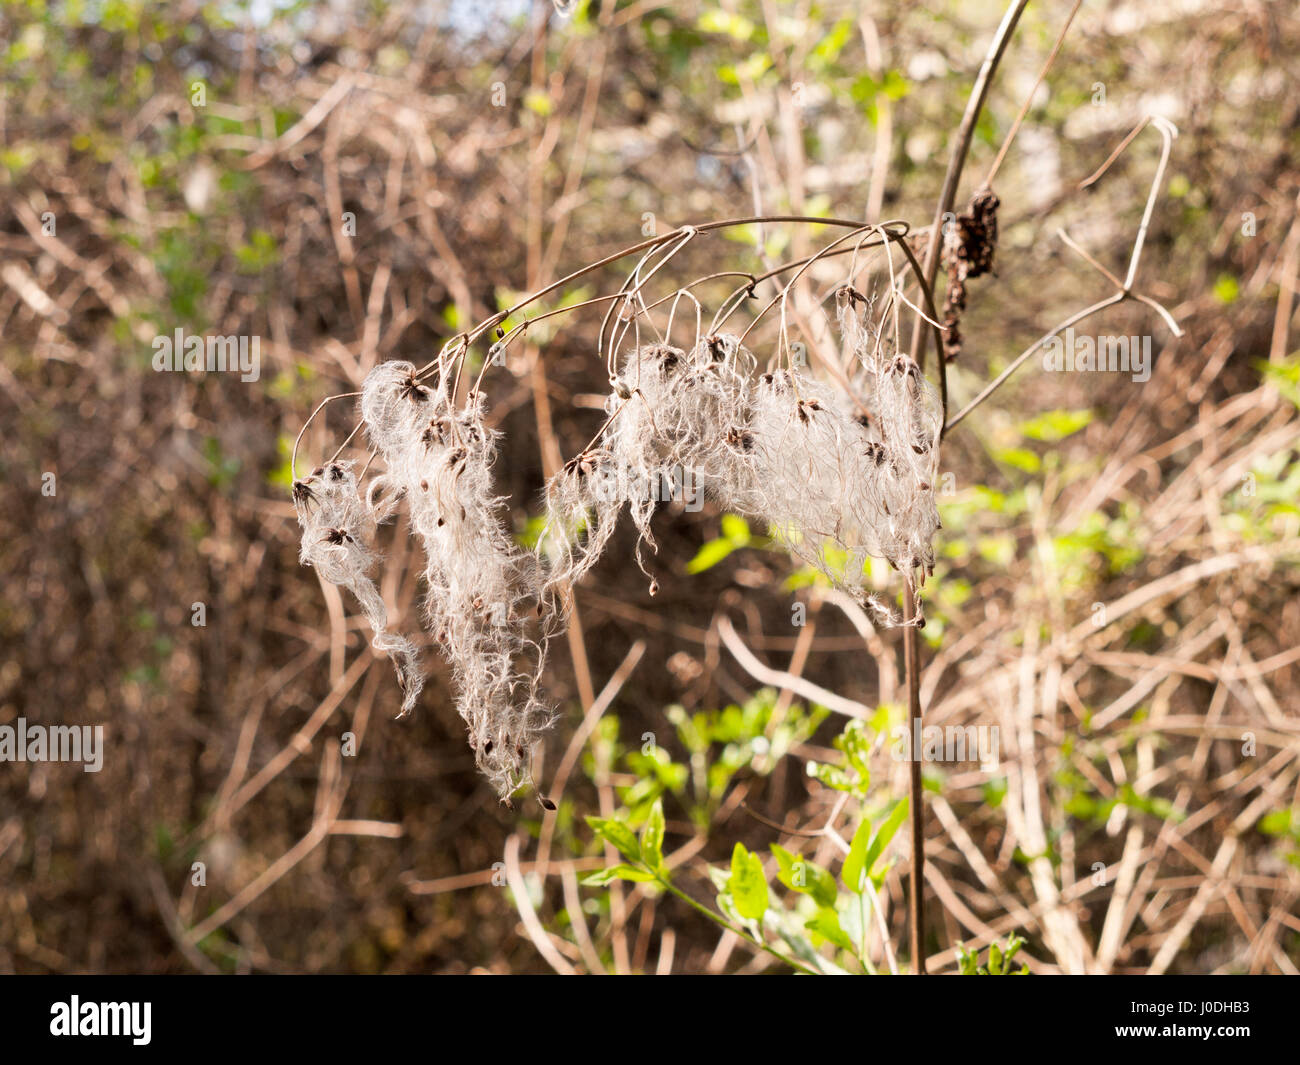 A Spindly Dead Plant With Hanging White Curtains Stock Photo